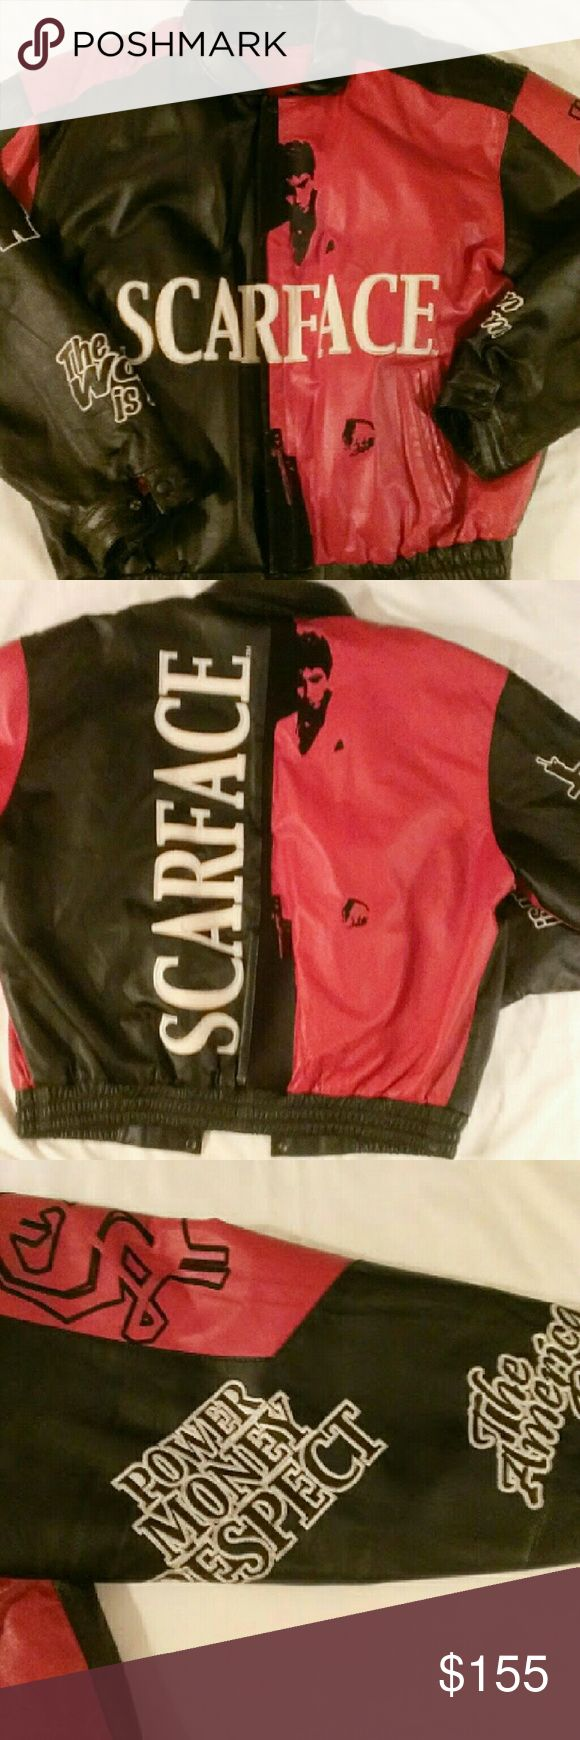 SCARFACE Leather Jacket / Coat This thing is AMAZING. Movie quotes down each arm. Al Pacino on front and back. Warm inner lining that zips out. Excellent condition with very little sign of wear. Genuine leather. Jackets & Coats Bomber & Varsity